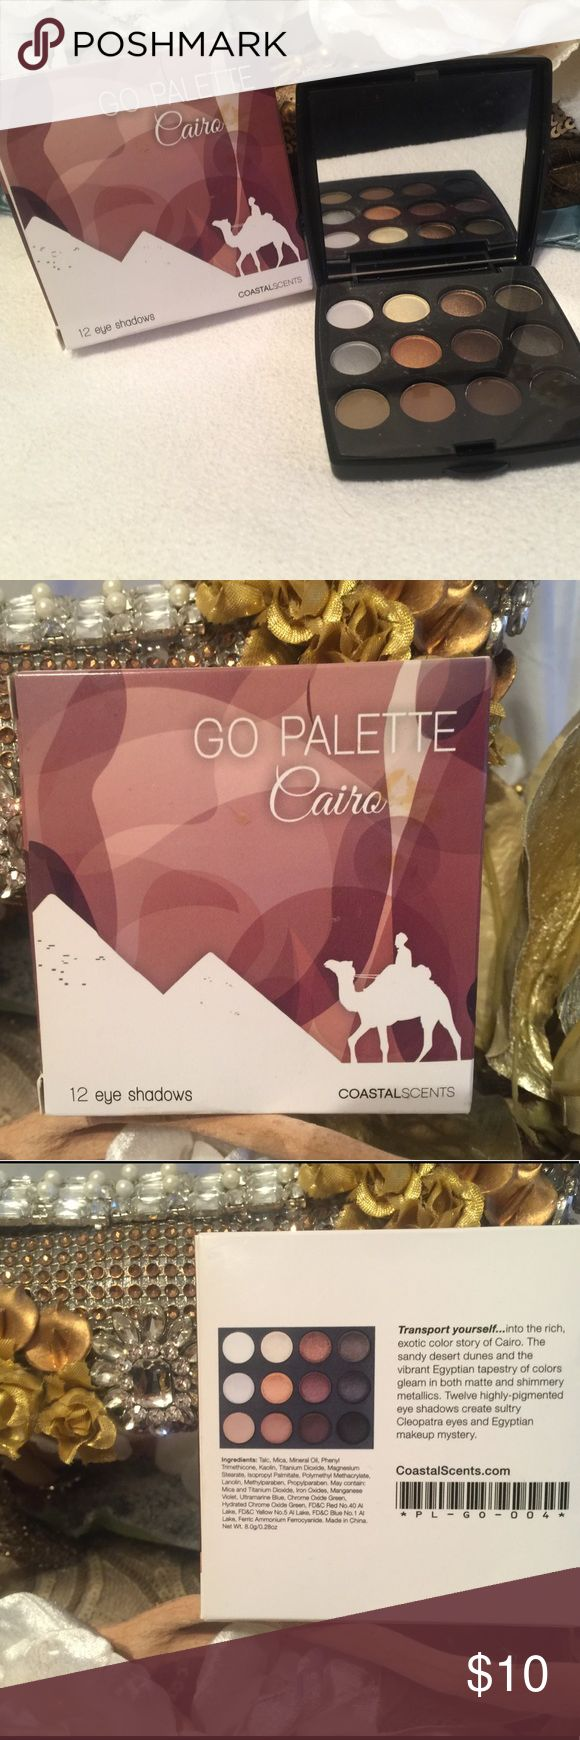 Coastal Scents Eyeshadow Palette FREE with any $25 purchase. Just let me know you want it. The $25 does NOT include shipping fees. Coastal Scents Makeup Eyeshadow